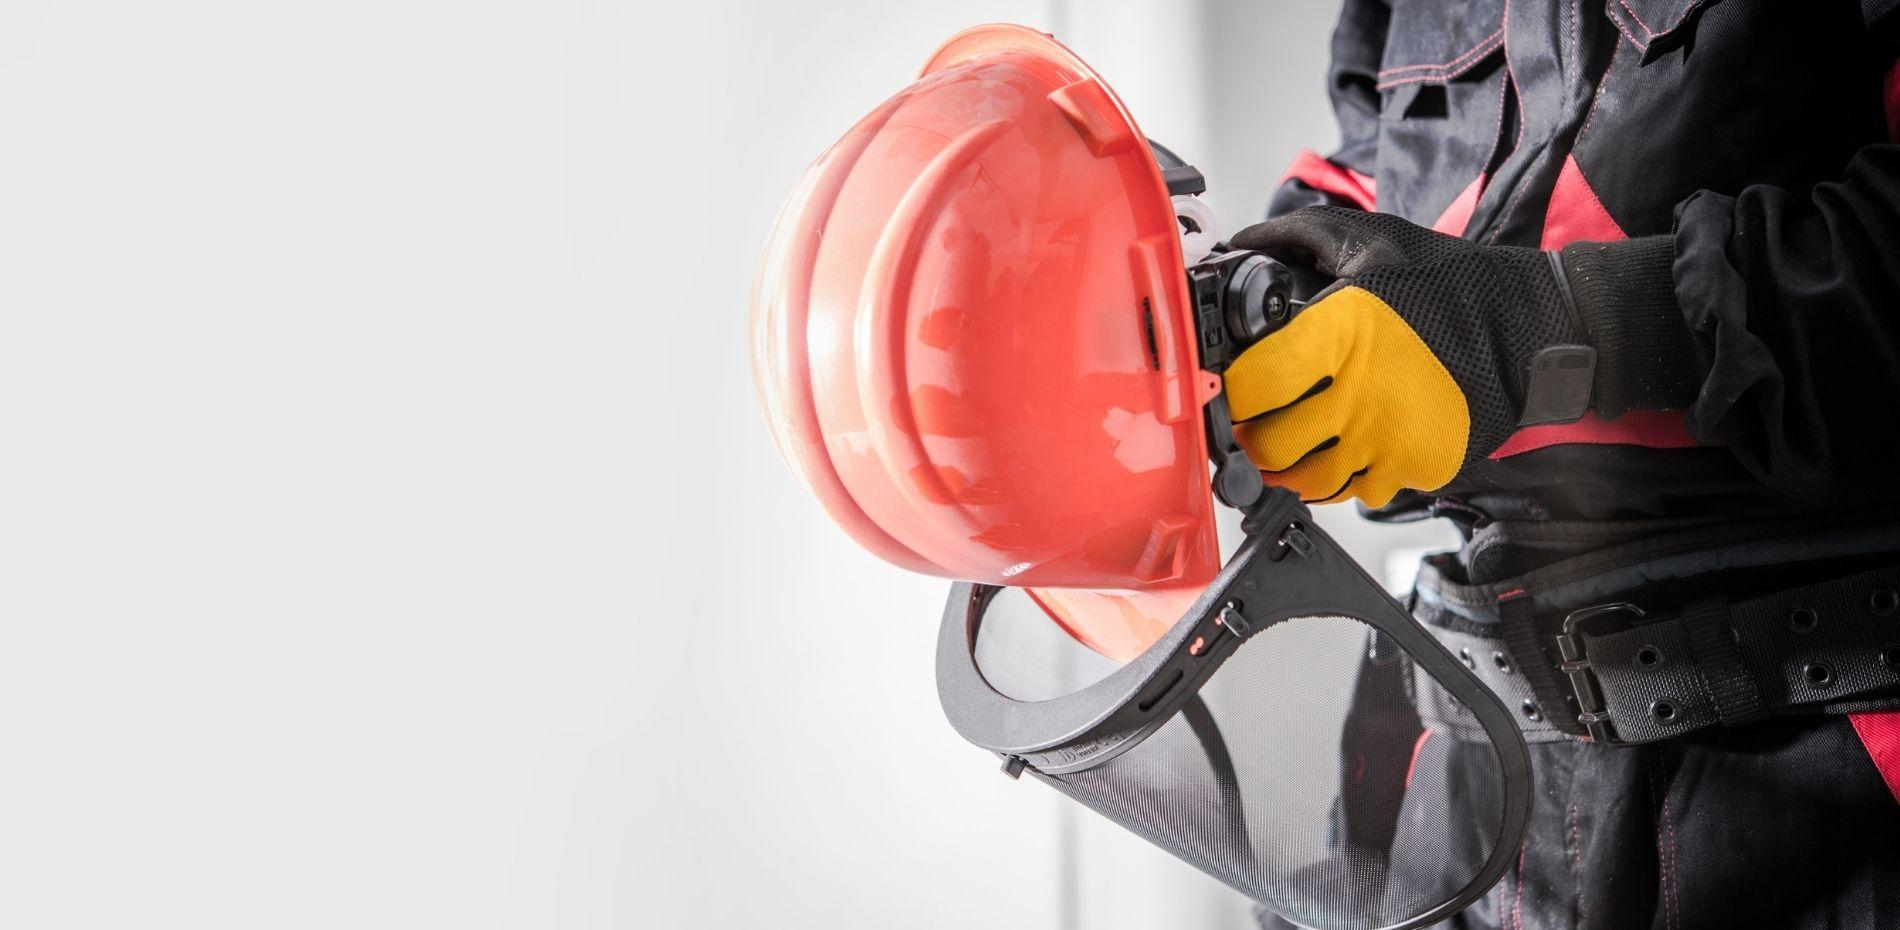 OSHA professional wearing personal protective equipment at work.